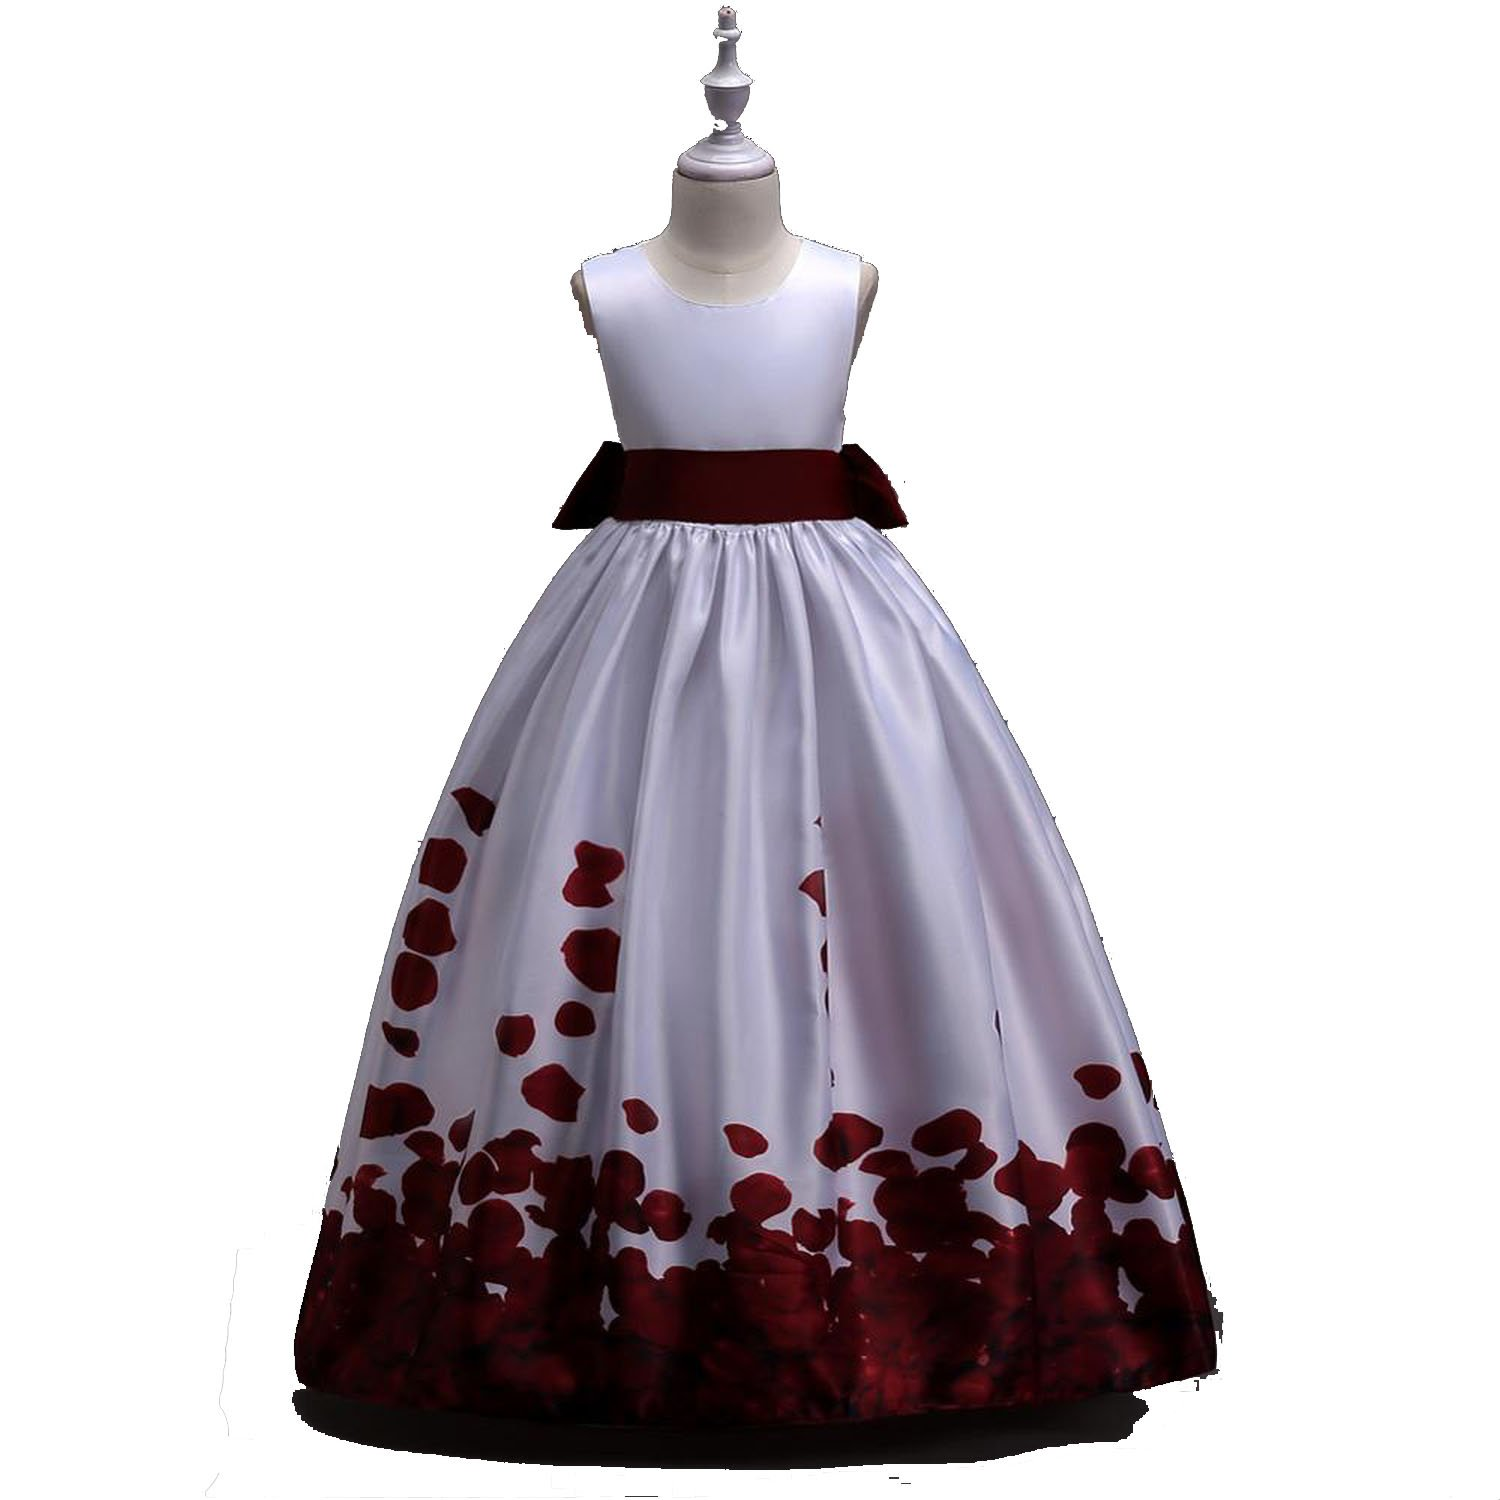 Flower Girl for Wedding Party Dress Long with Bow Print Formal Gown,Wine red,Child-6